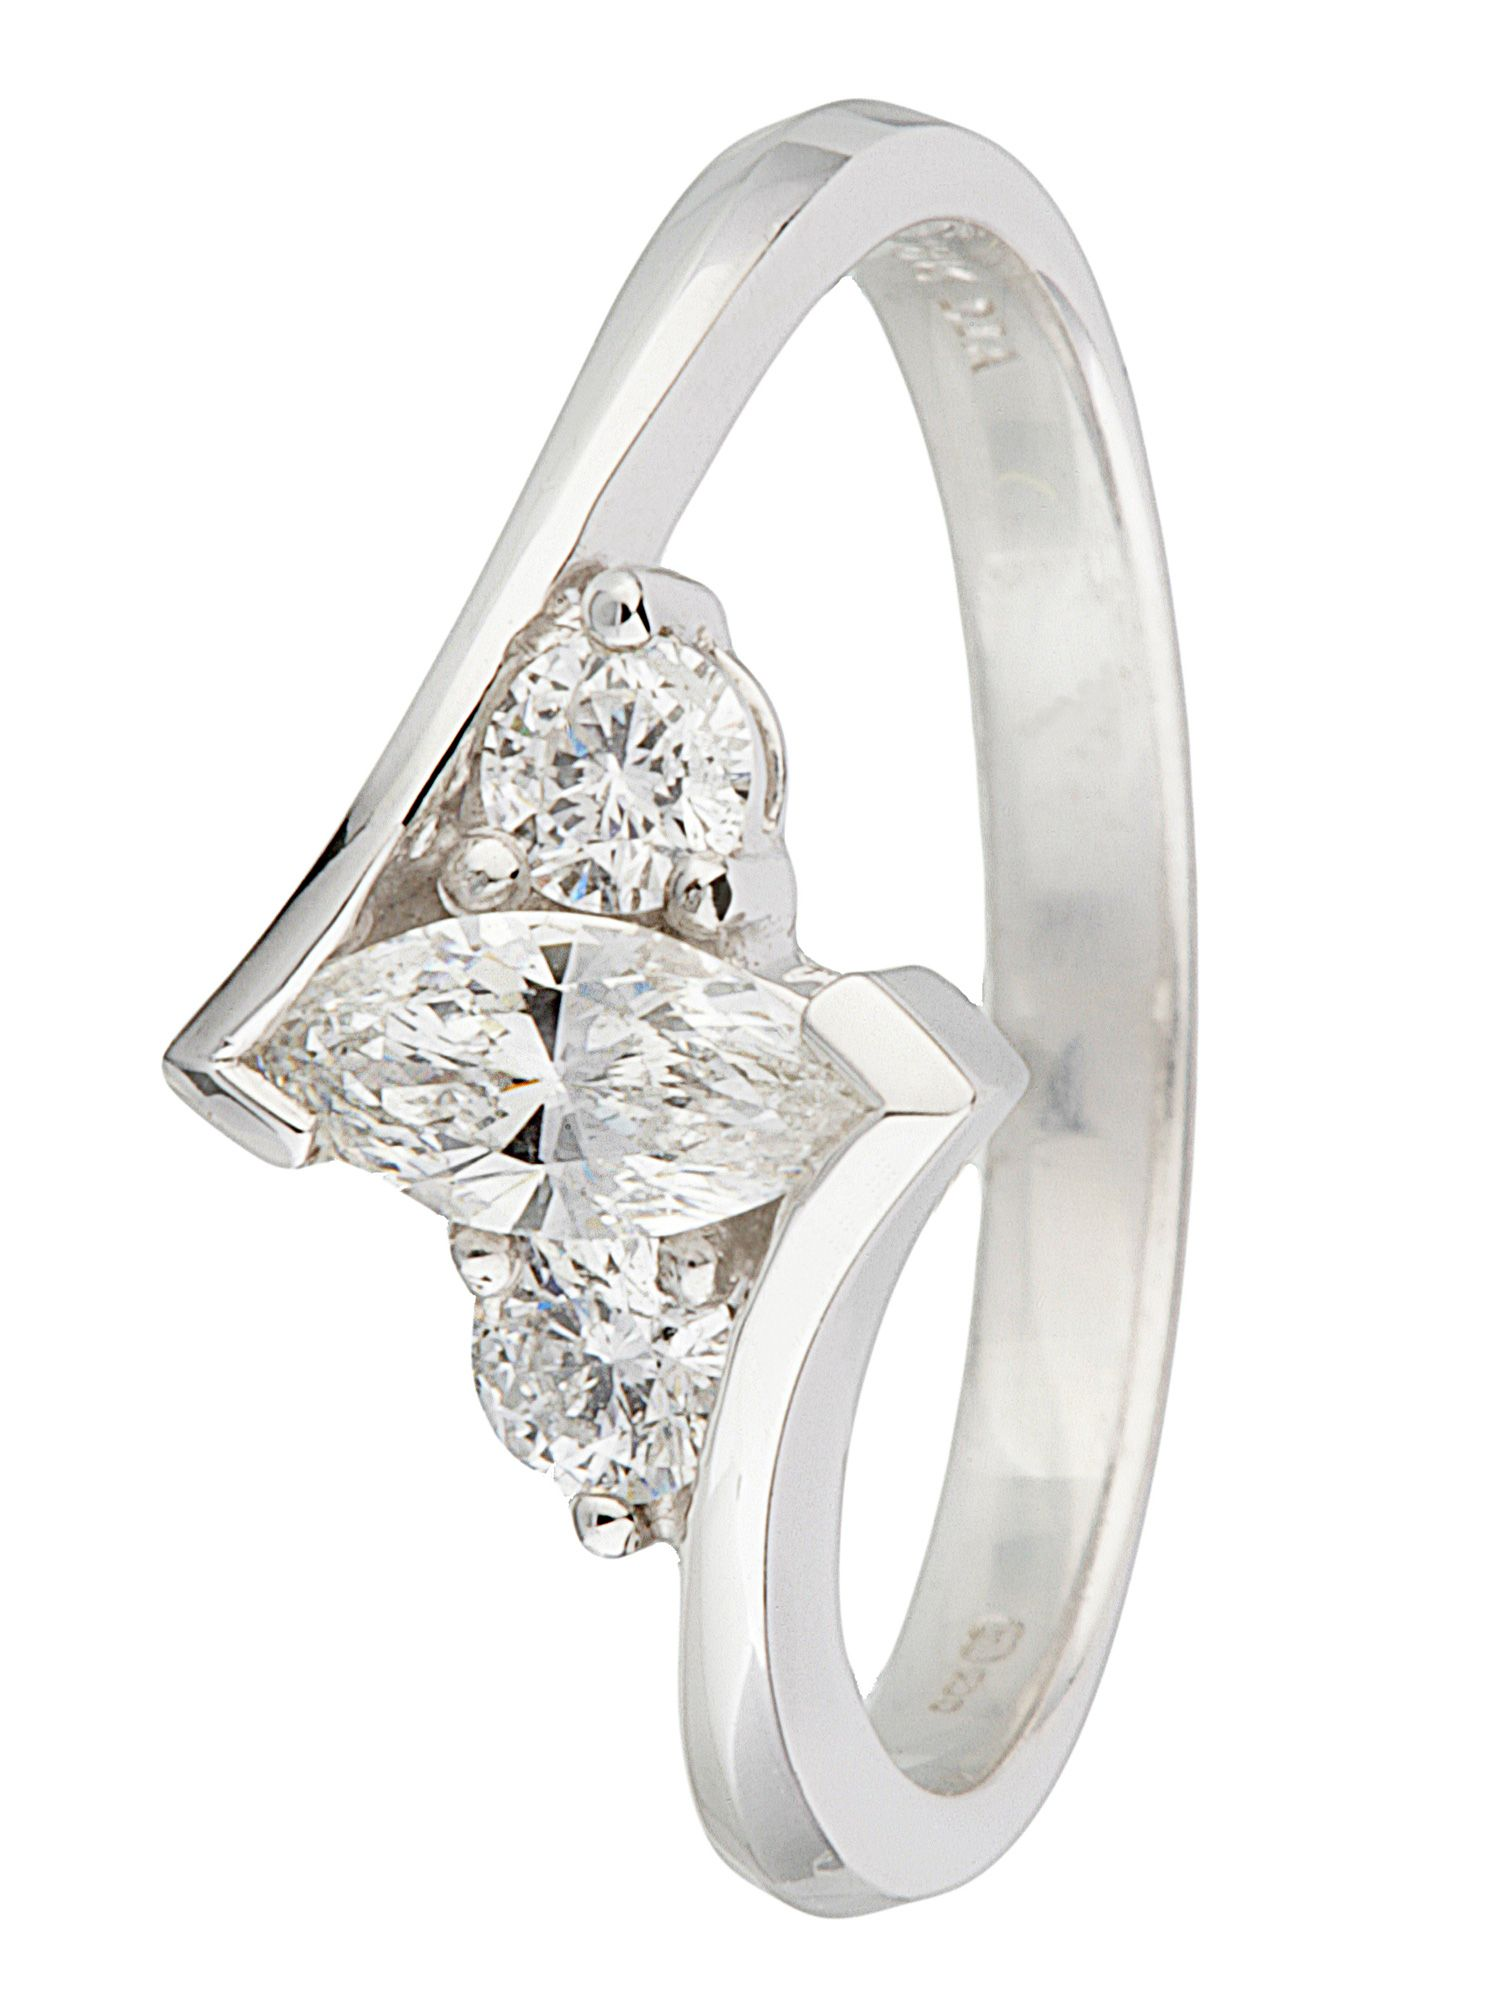 18ct gold 3 stone 0.50ct diamond ring